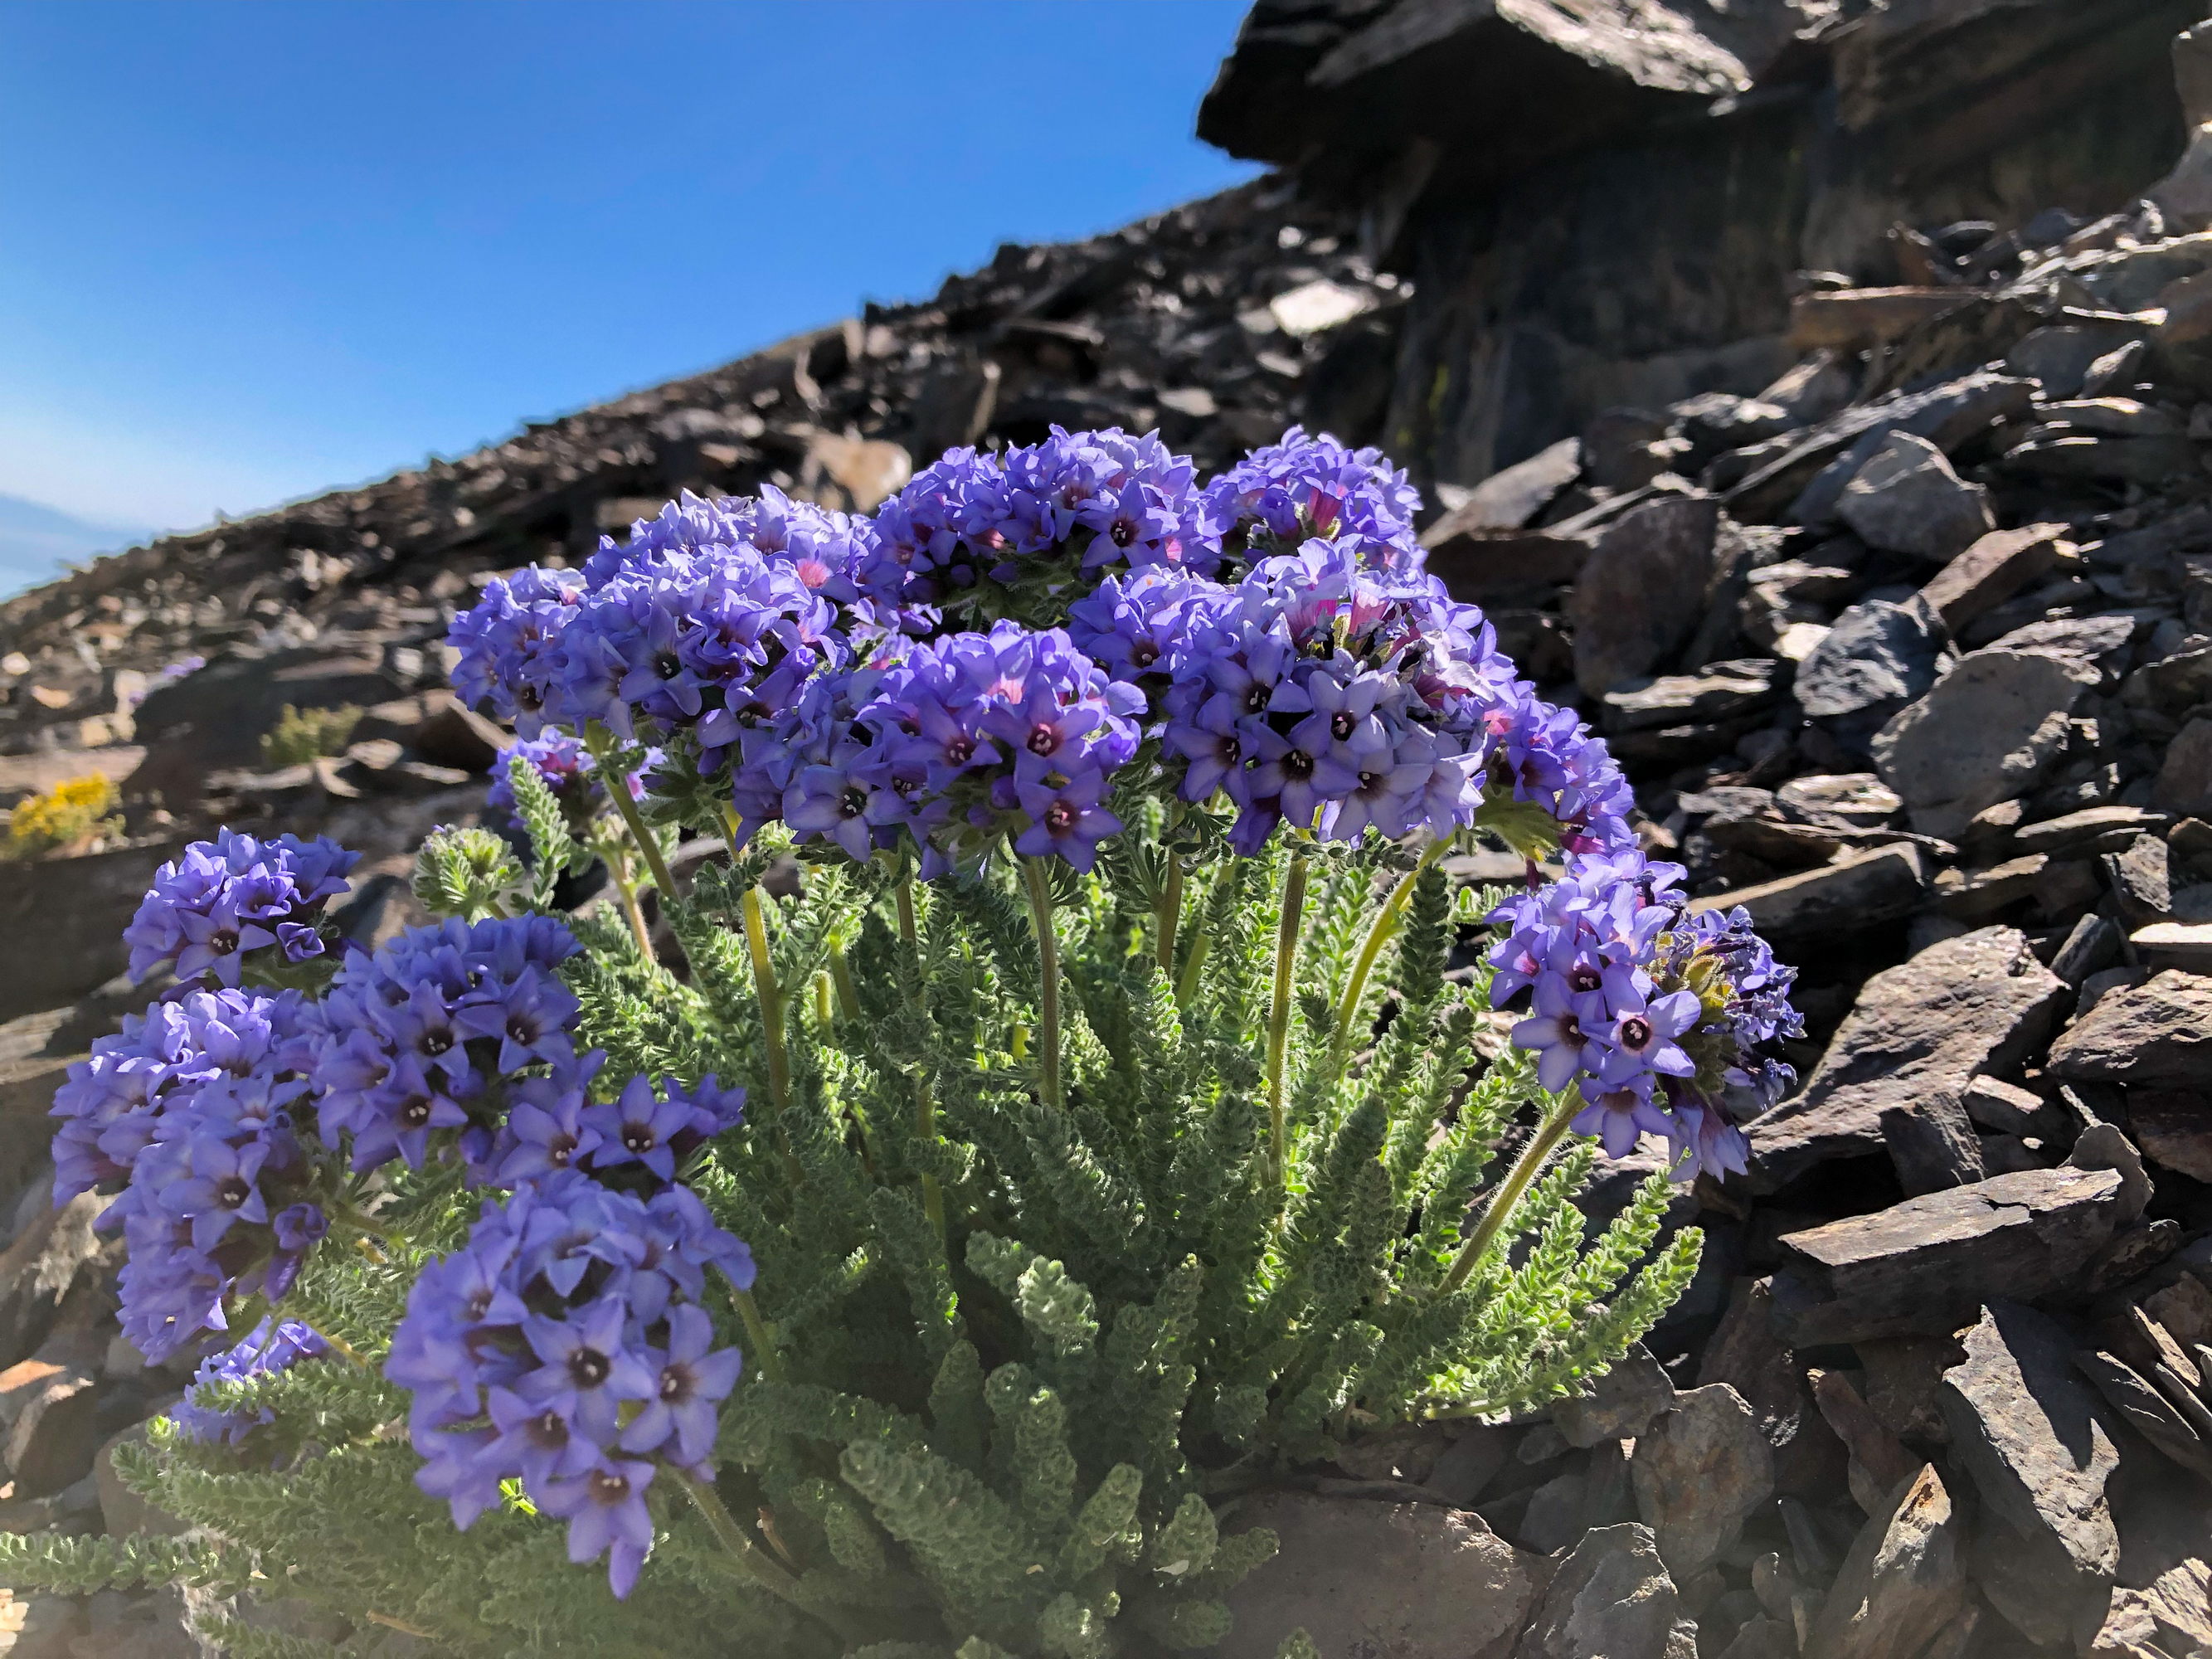 Purple sky pilot flowers blooming on Koip Pass in the Sierra Nevada Mountains.